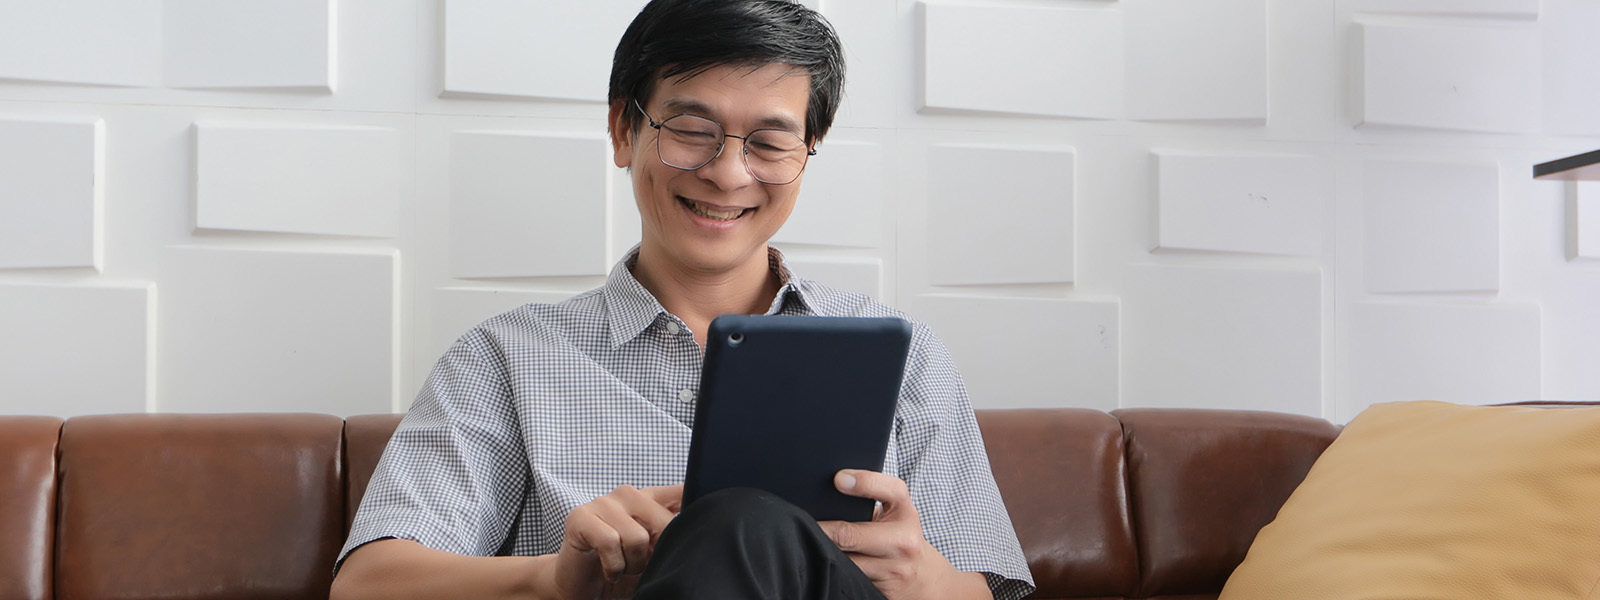 Image Of Man Smiling While Video Calling On Tablet Sitting On Couch